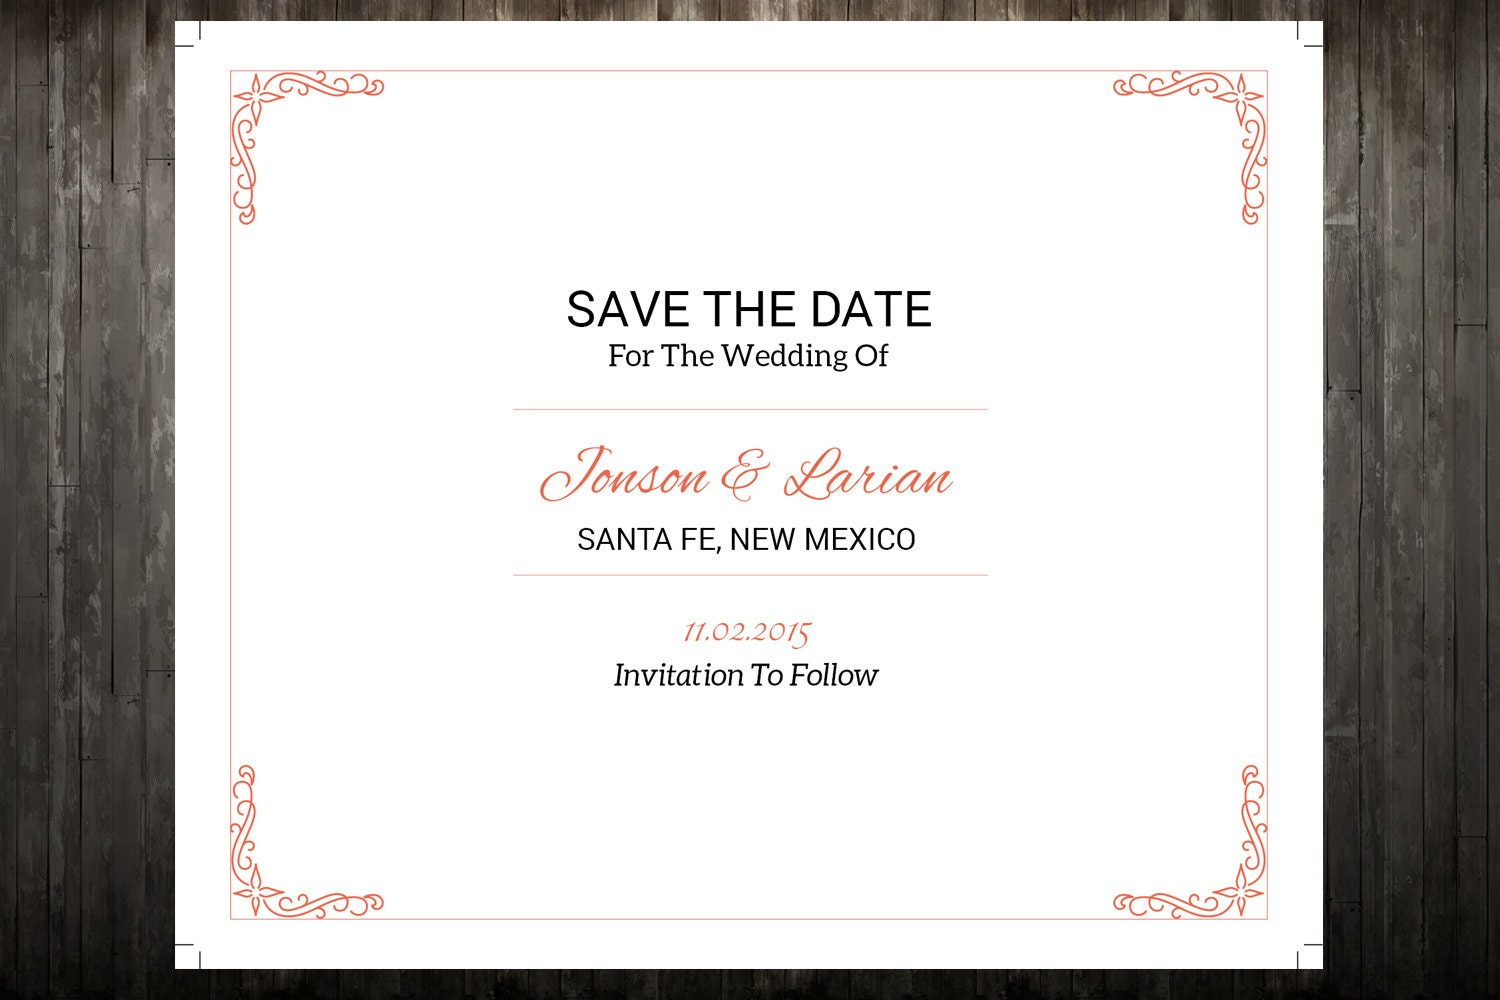 save the date template 185711 wedding save the date templates in